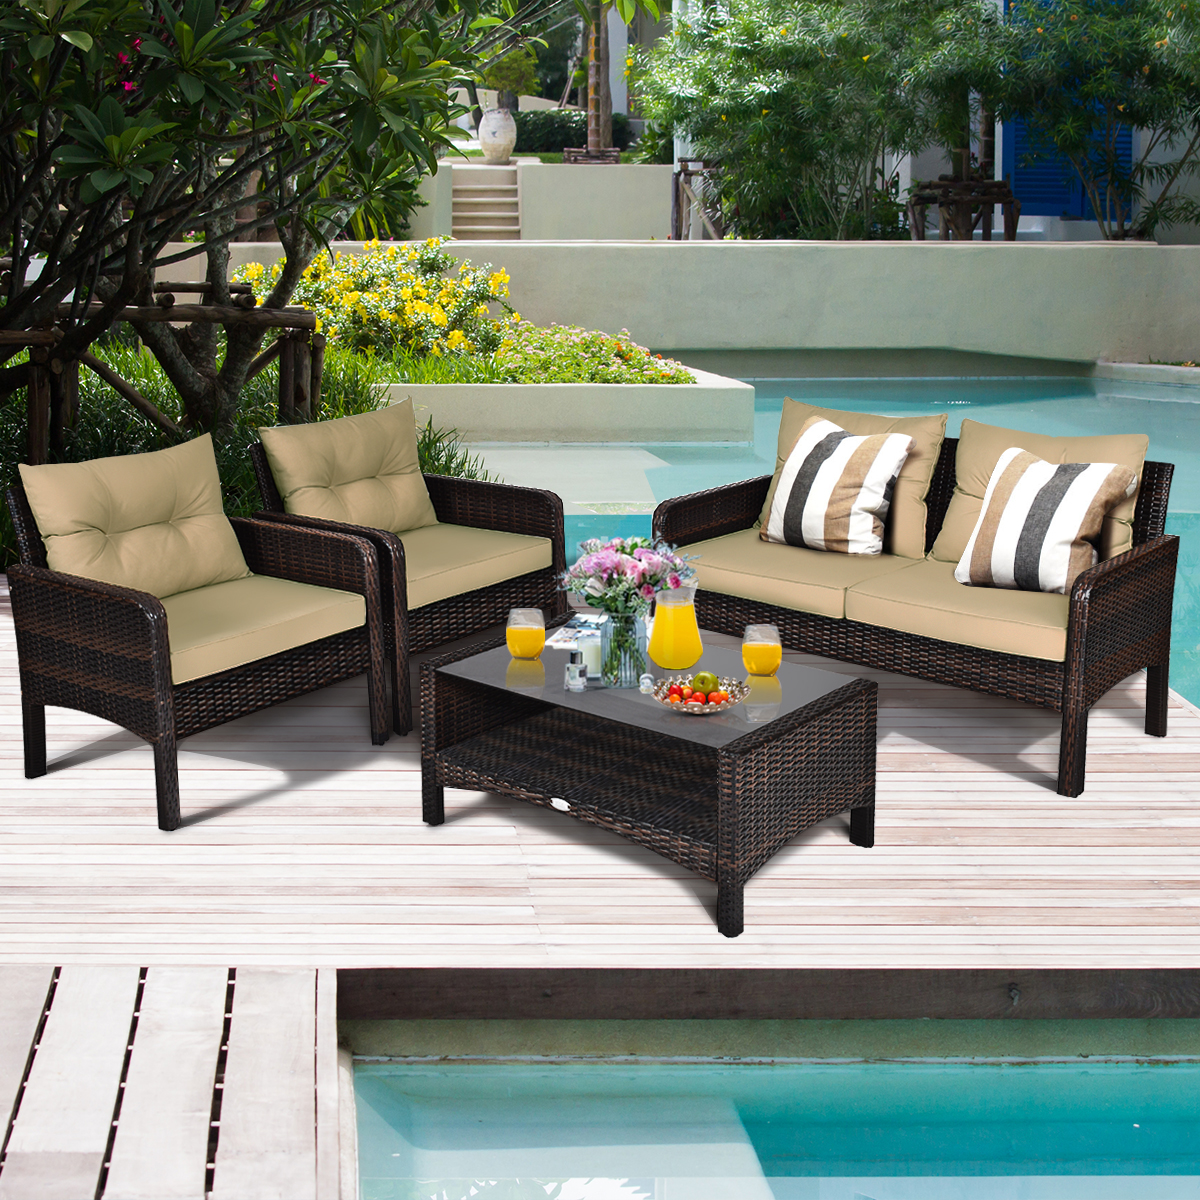 FANSI Rattan Garden Furniture Set 4 piece Patio Rattan furniture sofa Chair Weaving Wicker includes 2 Armchairs,1 Double seat Sofa and 1 table Outdoor Conservatory Indoor Brown 4pcs